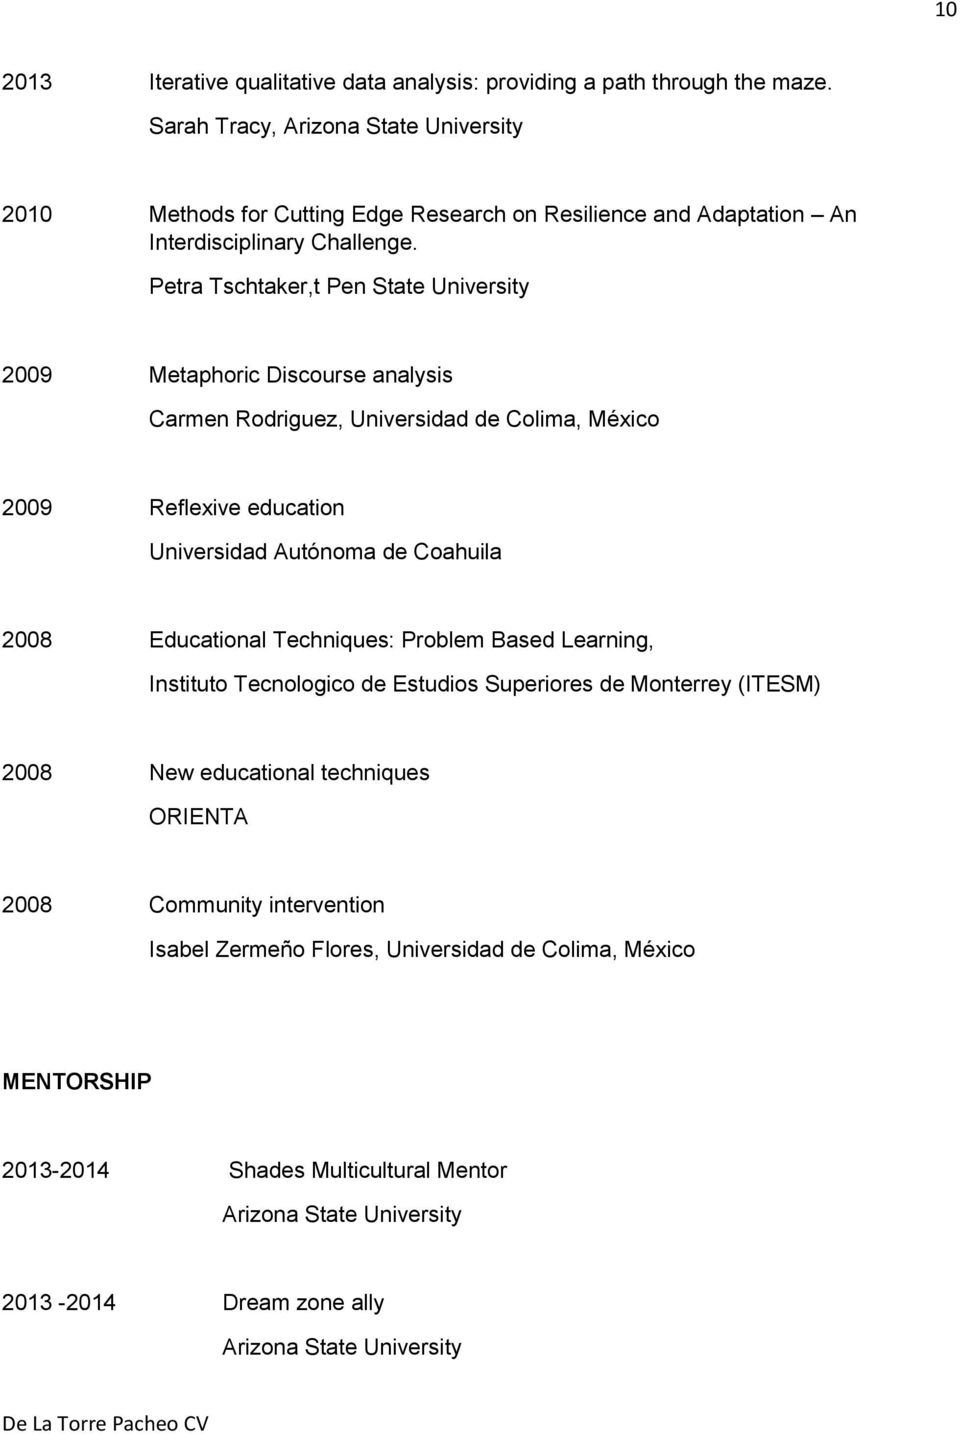 Petra Tschtaker,t Pen State University 2009 Metaphoric Discourse analysis Carmen Rodriguez, Universidad de Colima, Me xico 2009 Reflexive education Universidad Auto noma de